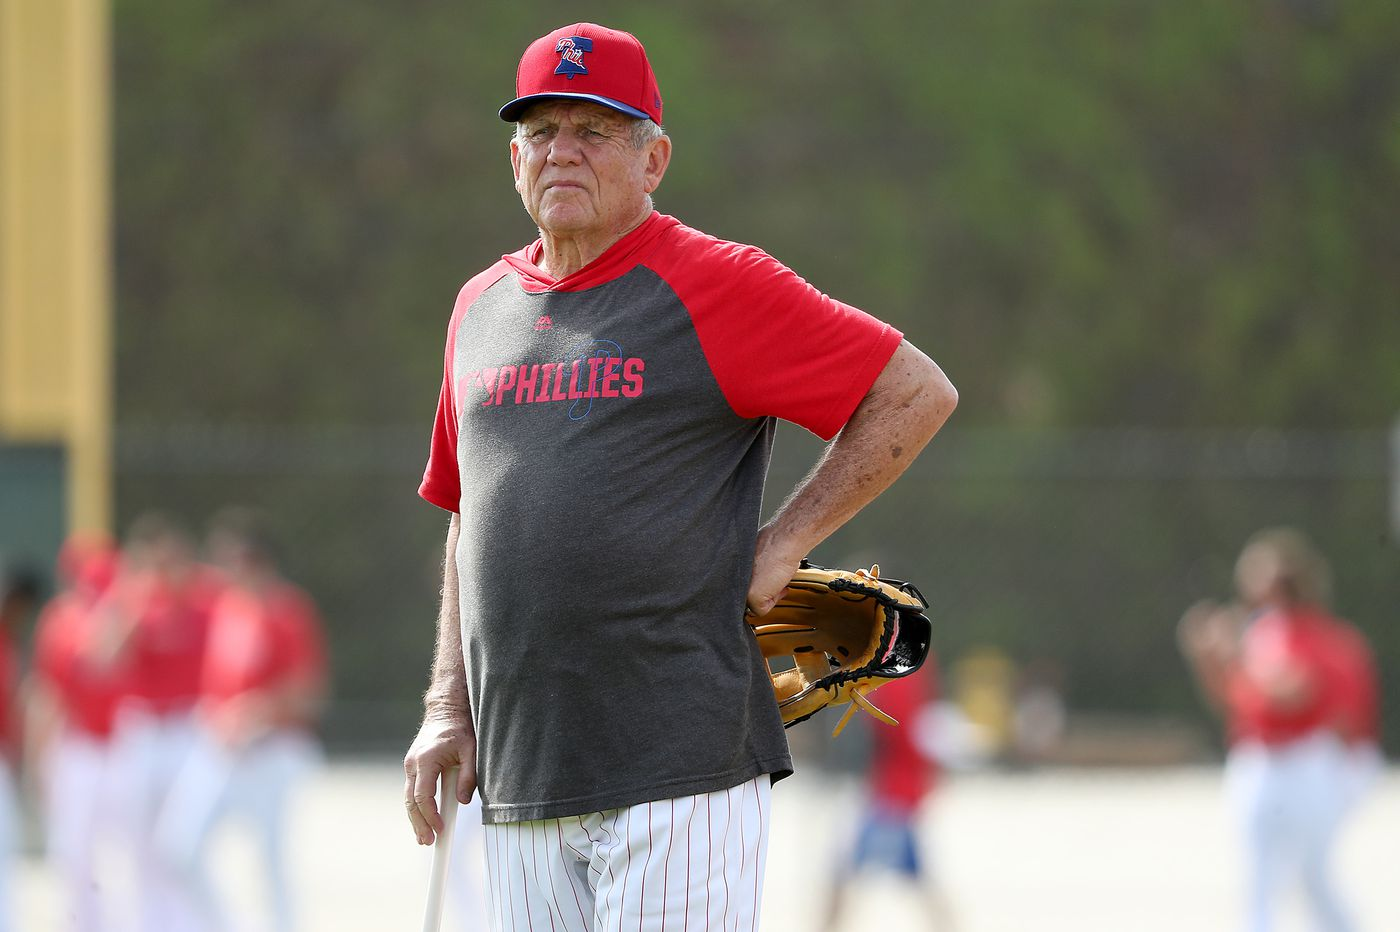 Phillies' Larry Bowa says Houston Astros hitters should be drilled for cheating | Bob Brookover